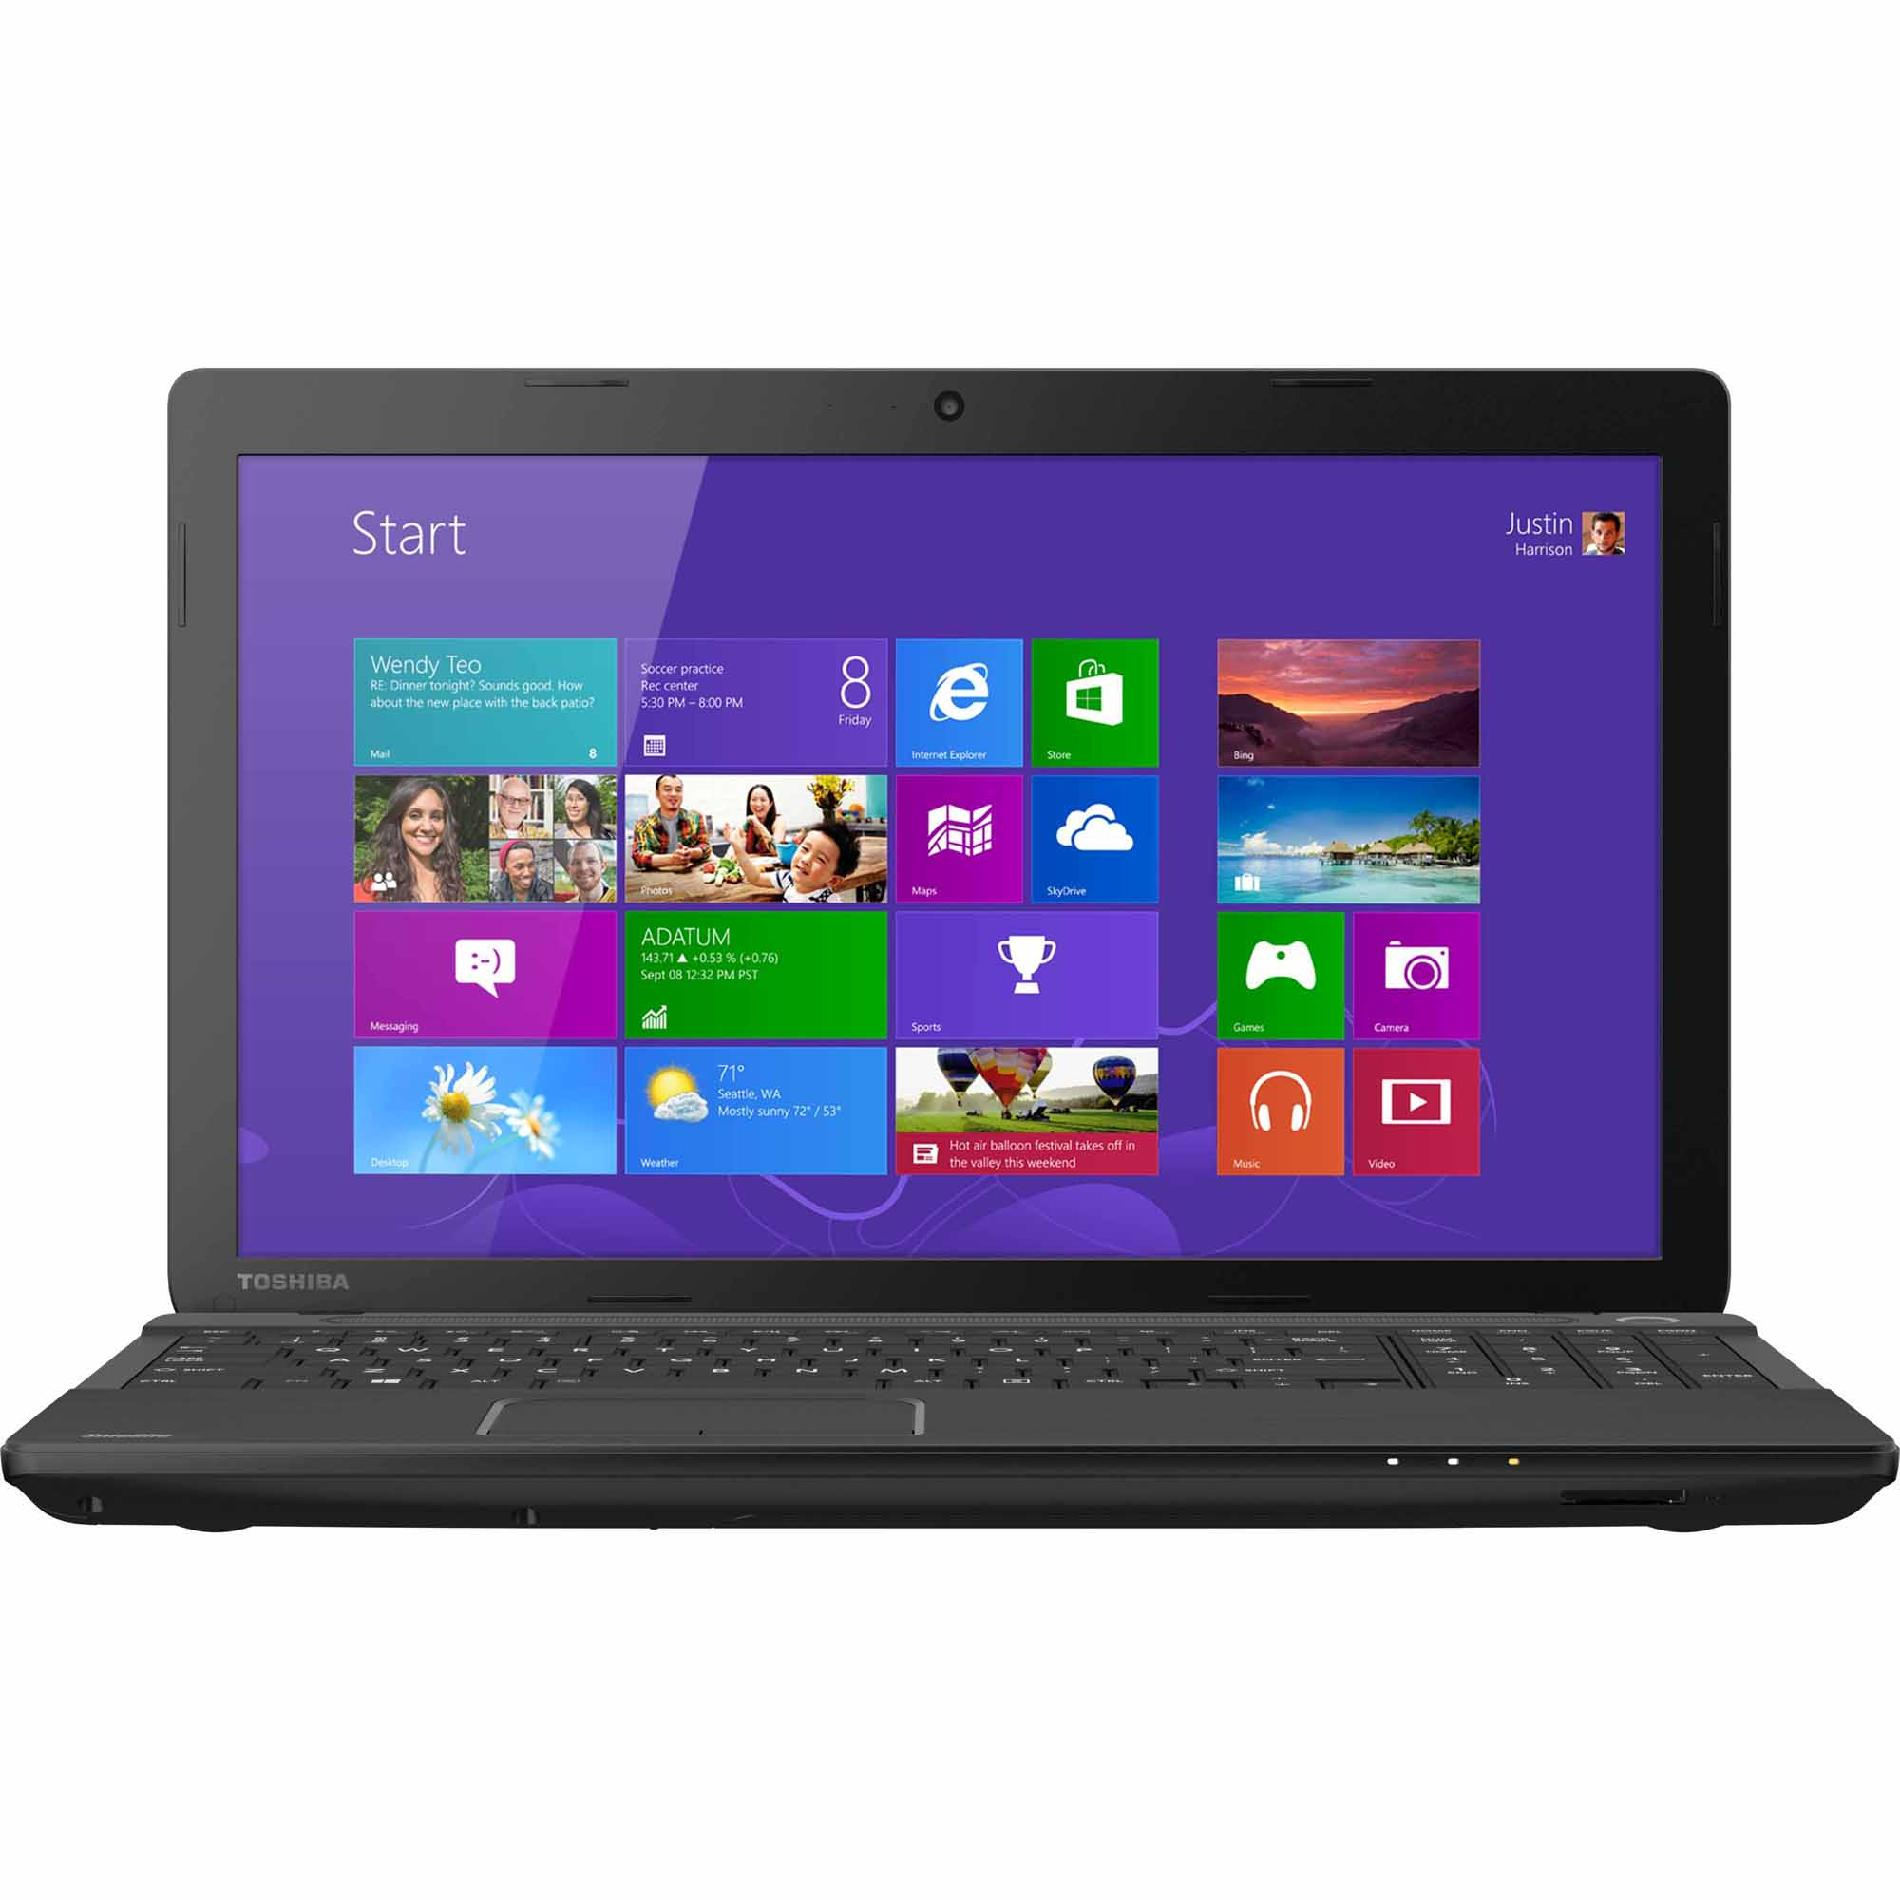 "Refurbished Toshiba Satellite 15.6"" Touchscreen Laptop PC with Intel Core i3-3110M Processor ( GHz), 6GB Memory, 500GB Hard Drive and Windows 8, C55T-A5394 (Black)"